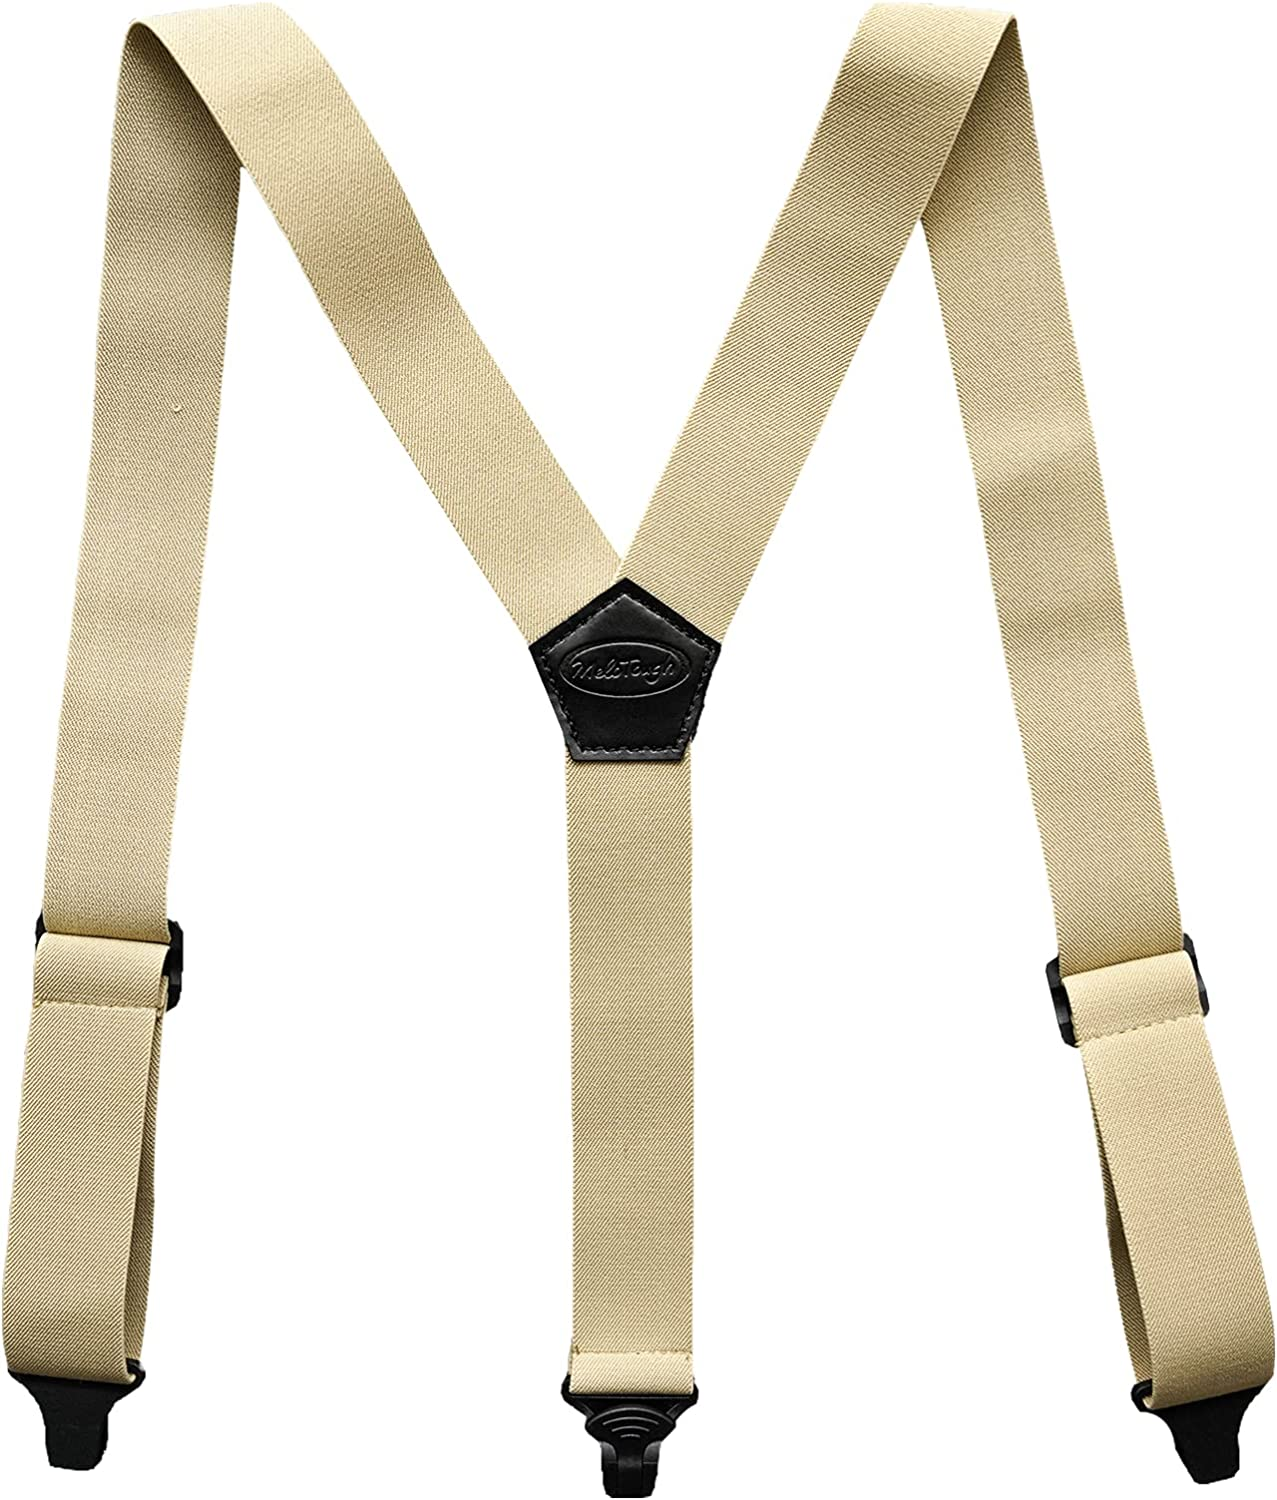 Melo Tough Y back suspenders airport friendly Suspenders,NO buzz with Plastic Clip 1.5 inch fully elastic braces